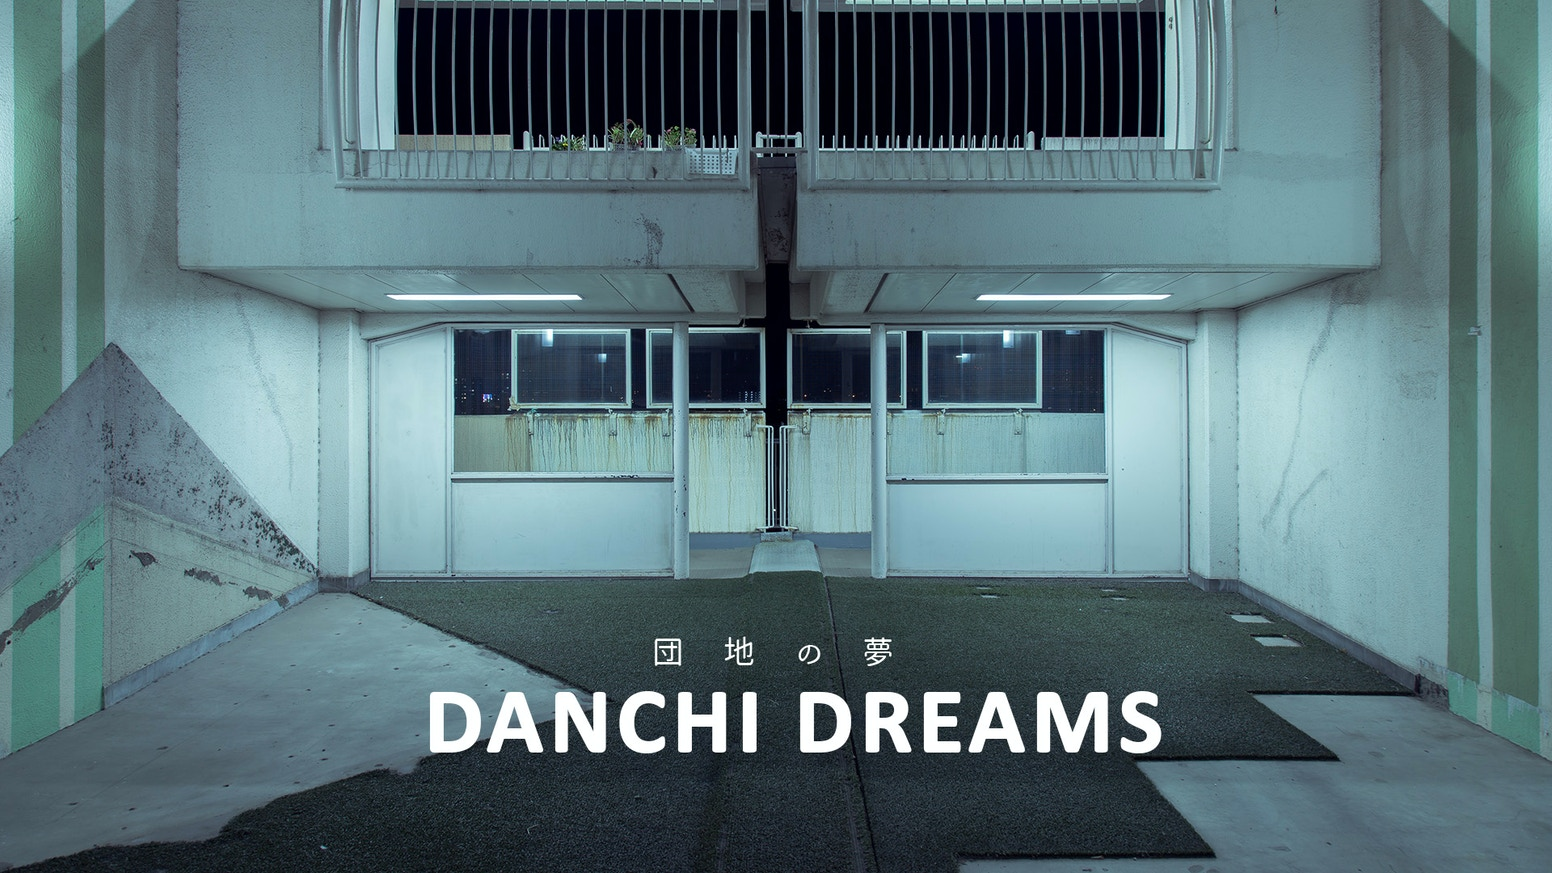 DANCHI DREAMS: A Photobook of Japanese Public Housing is the top crowdfunding project launched today. DANCHI DREAMS: A Photobook of Japanese Public Housing raised over $1802947 from 177 backers. Other top projects include MODULAR DUNGEON - The 2nd Level, Aquilae:Expanded Bestiary of the Realm (Pathfinder/5E/OSRIC), The Planets: Mars Playing Cards [4 of 8]...